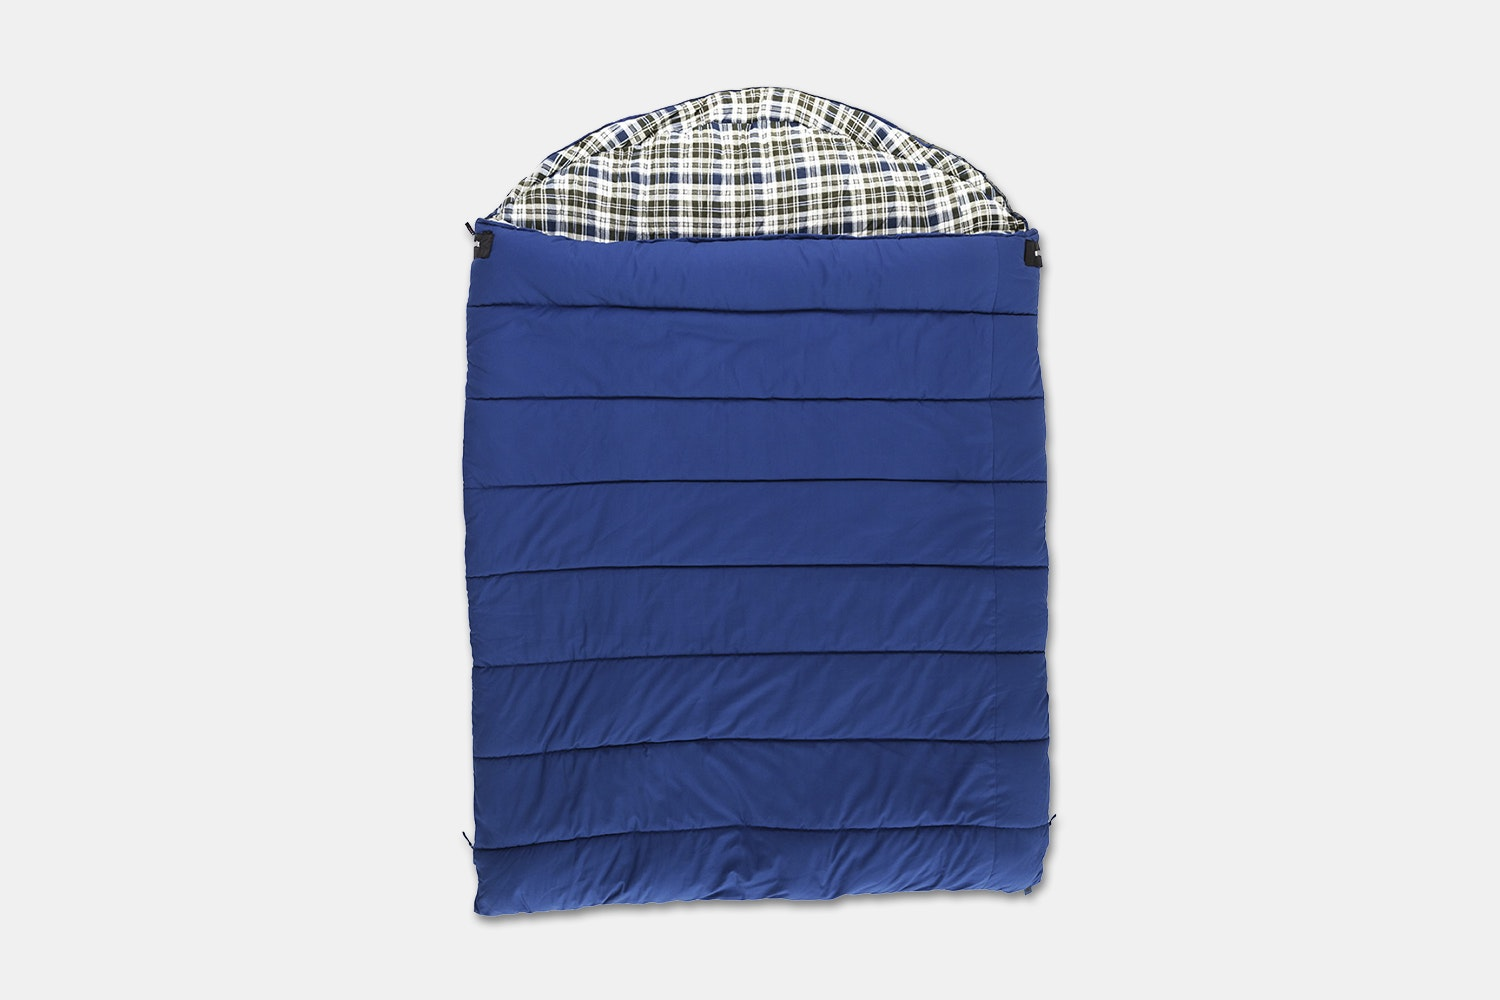 Grizzly 2 Person – 25 Degree – Canvas –Blue (+ $55)